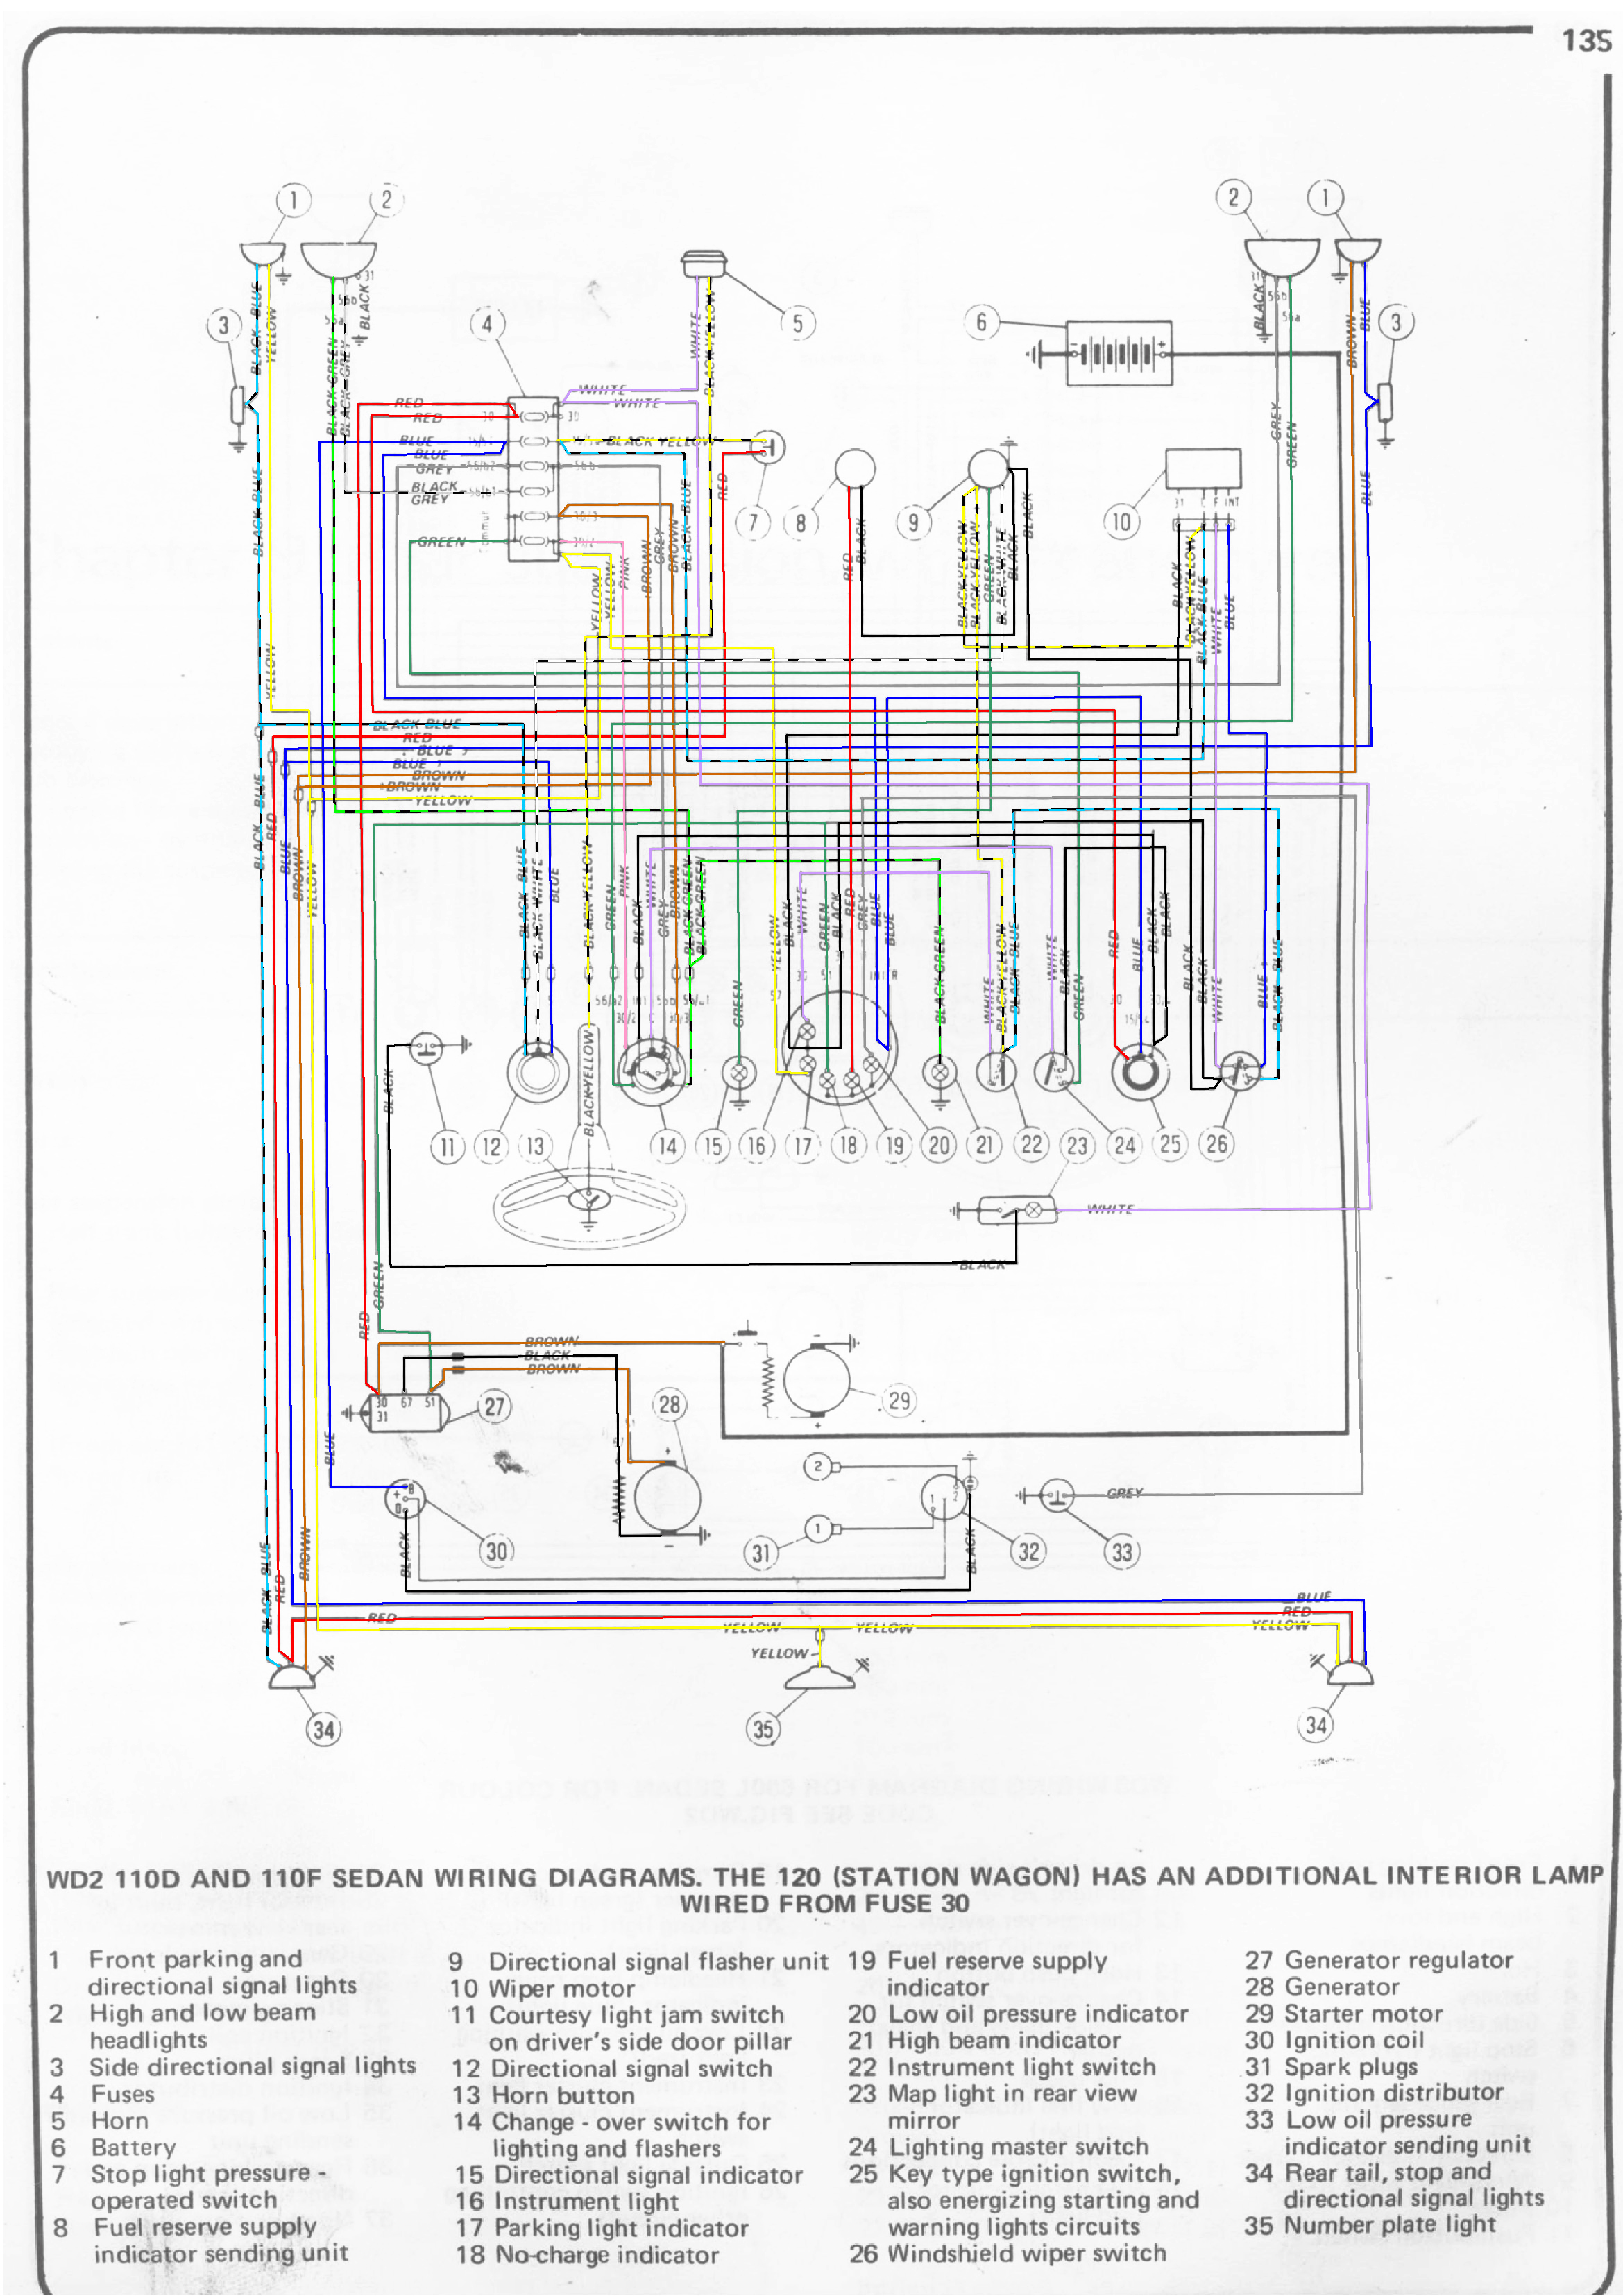 Fiat Multipla Wiring Diagram Libraries Speedo Cable Punto Towbar Todaysfiat Diagrams Electrical